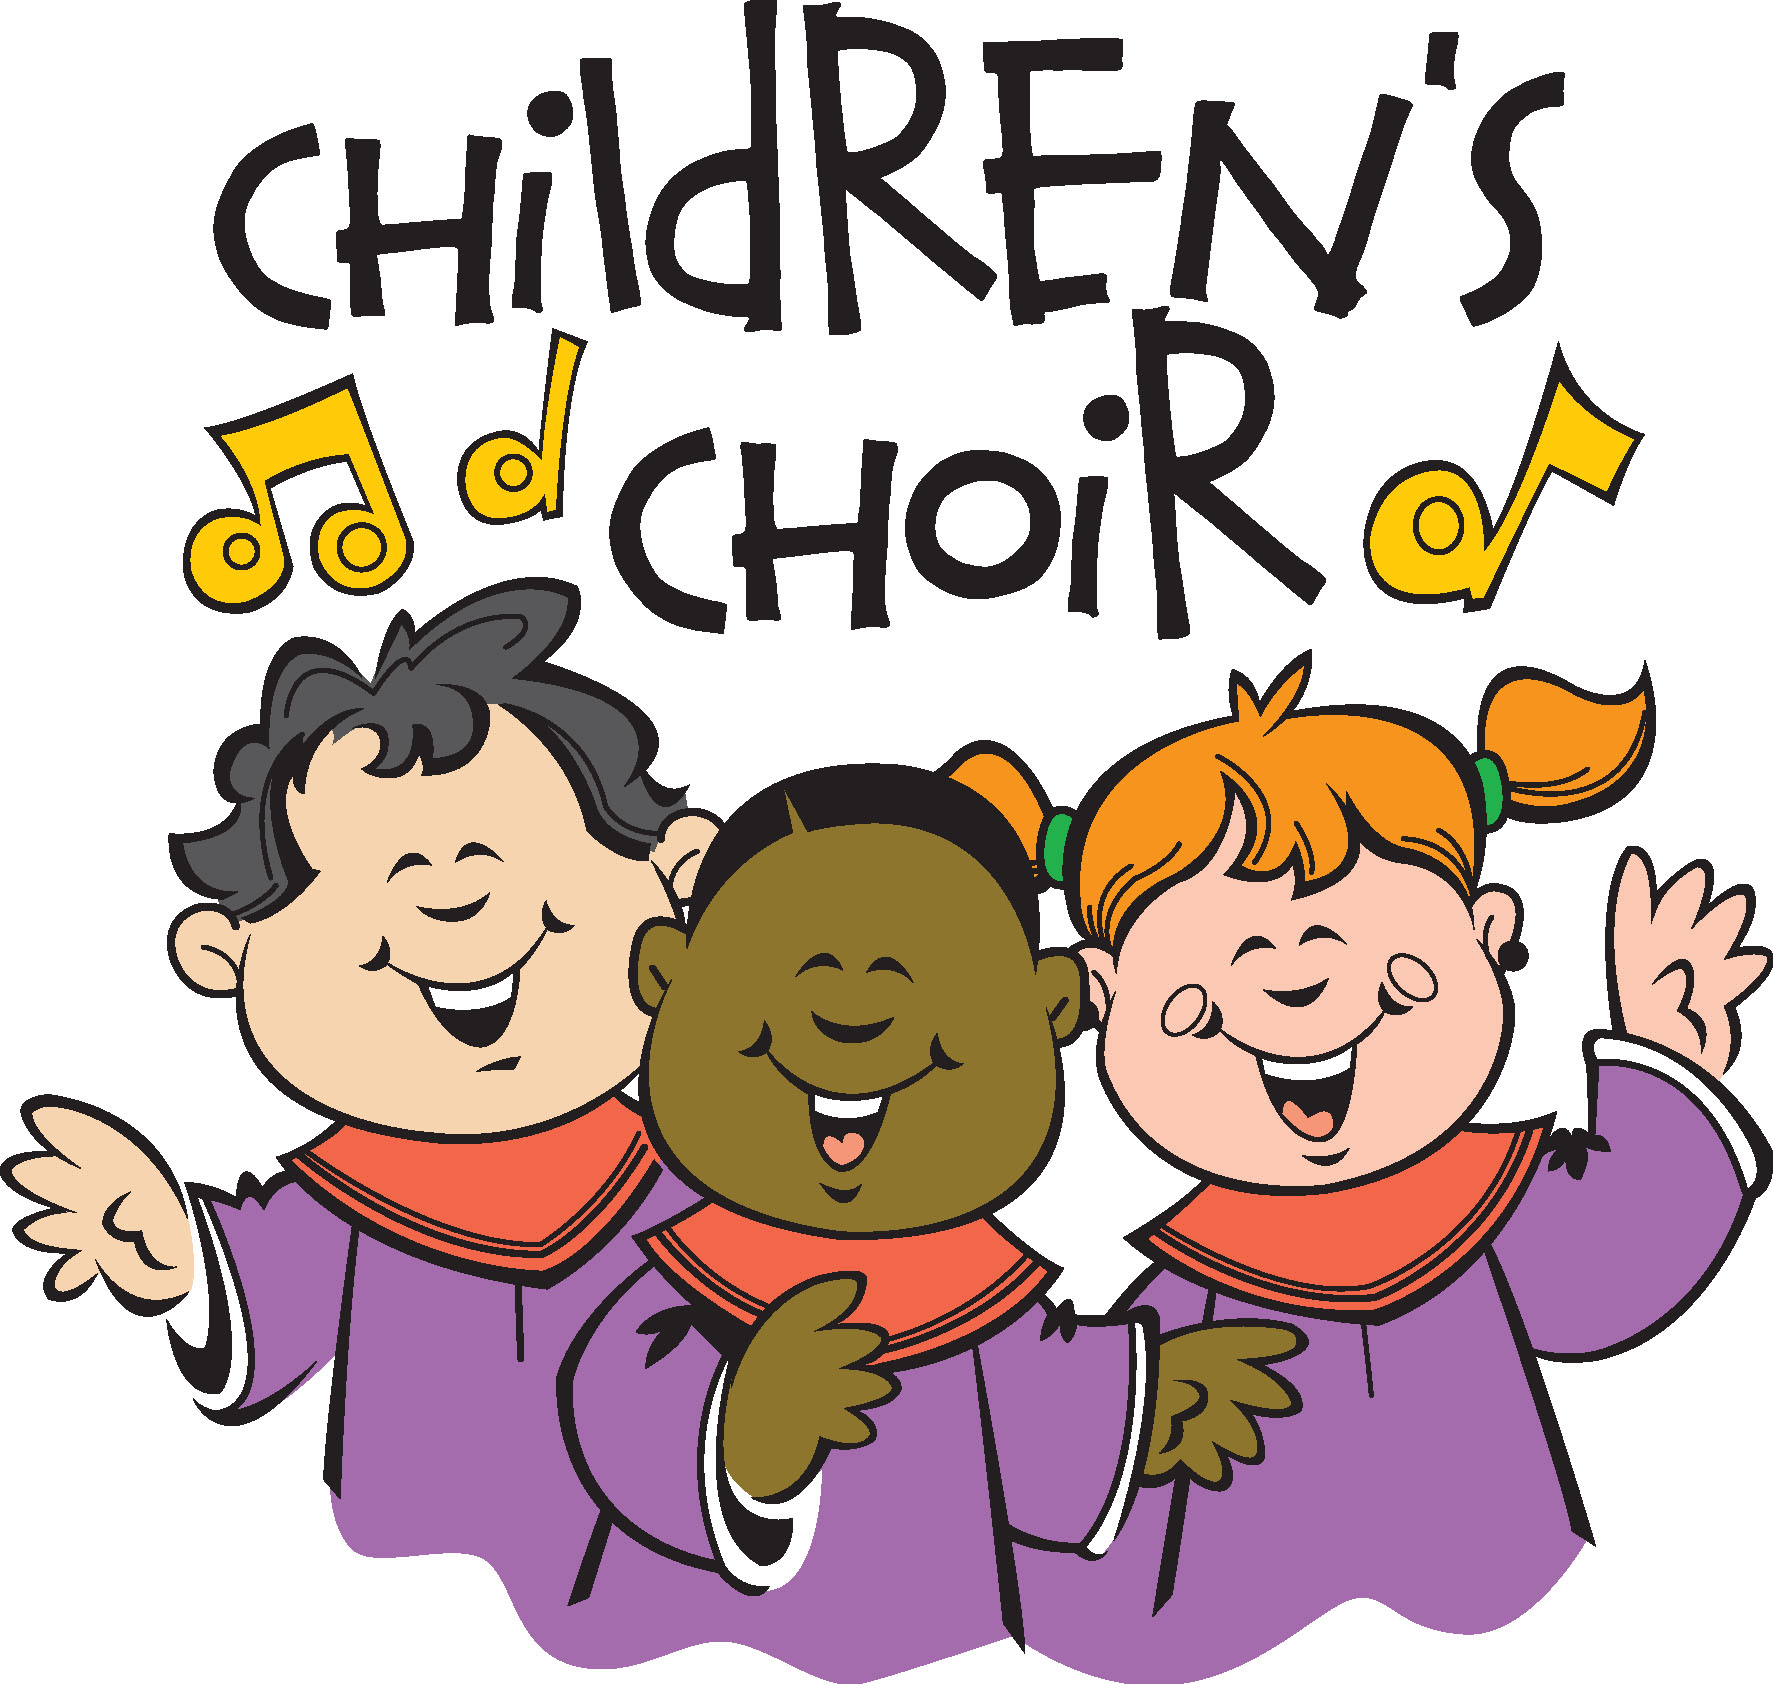 Childrenschoir